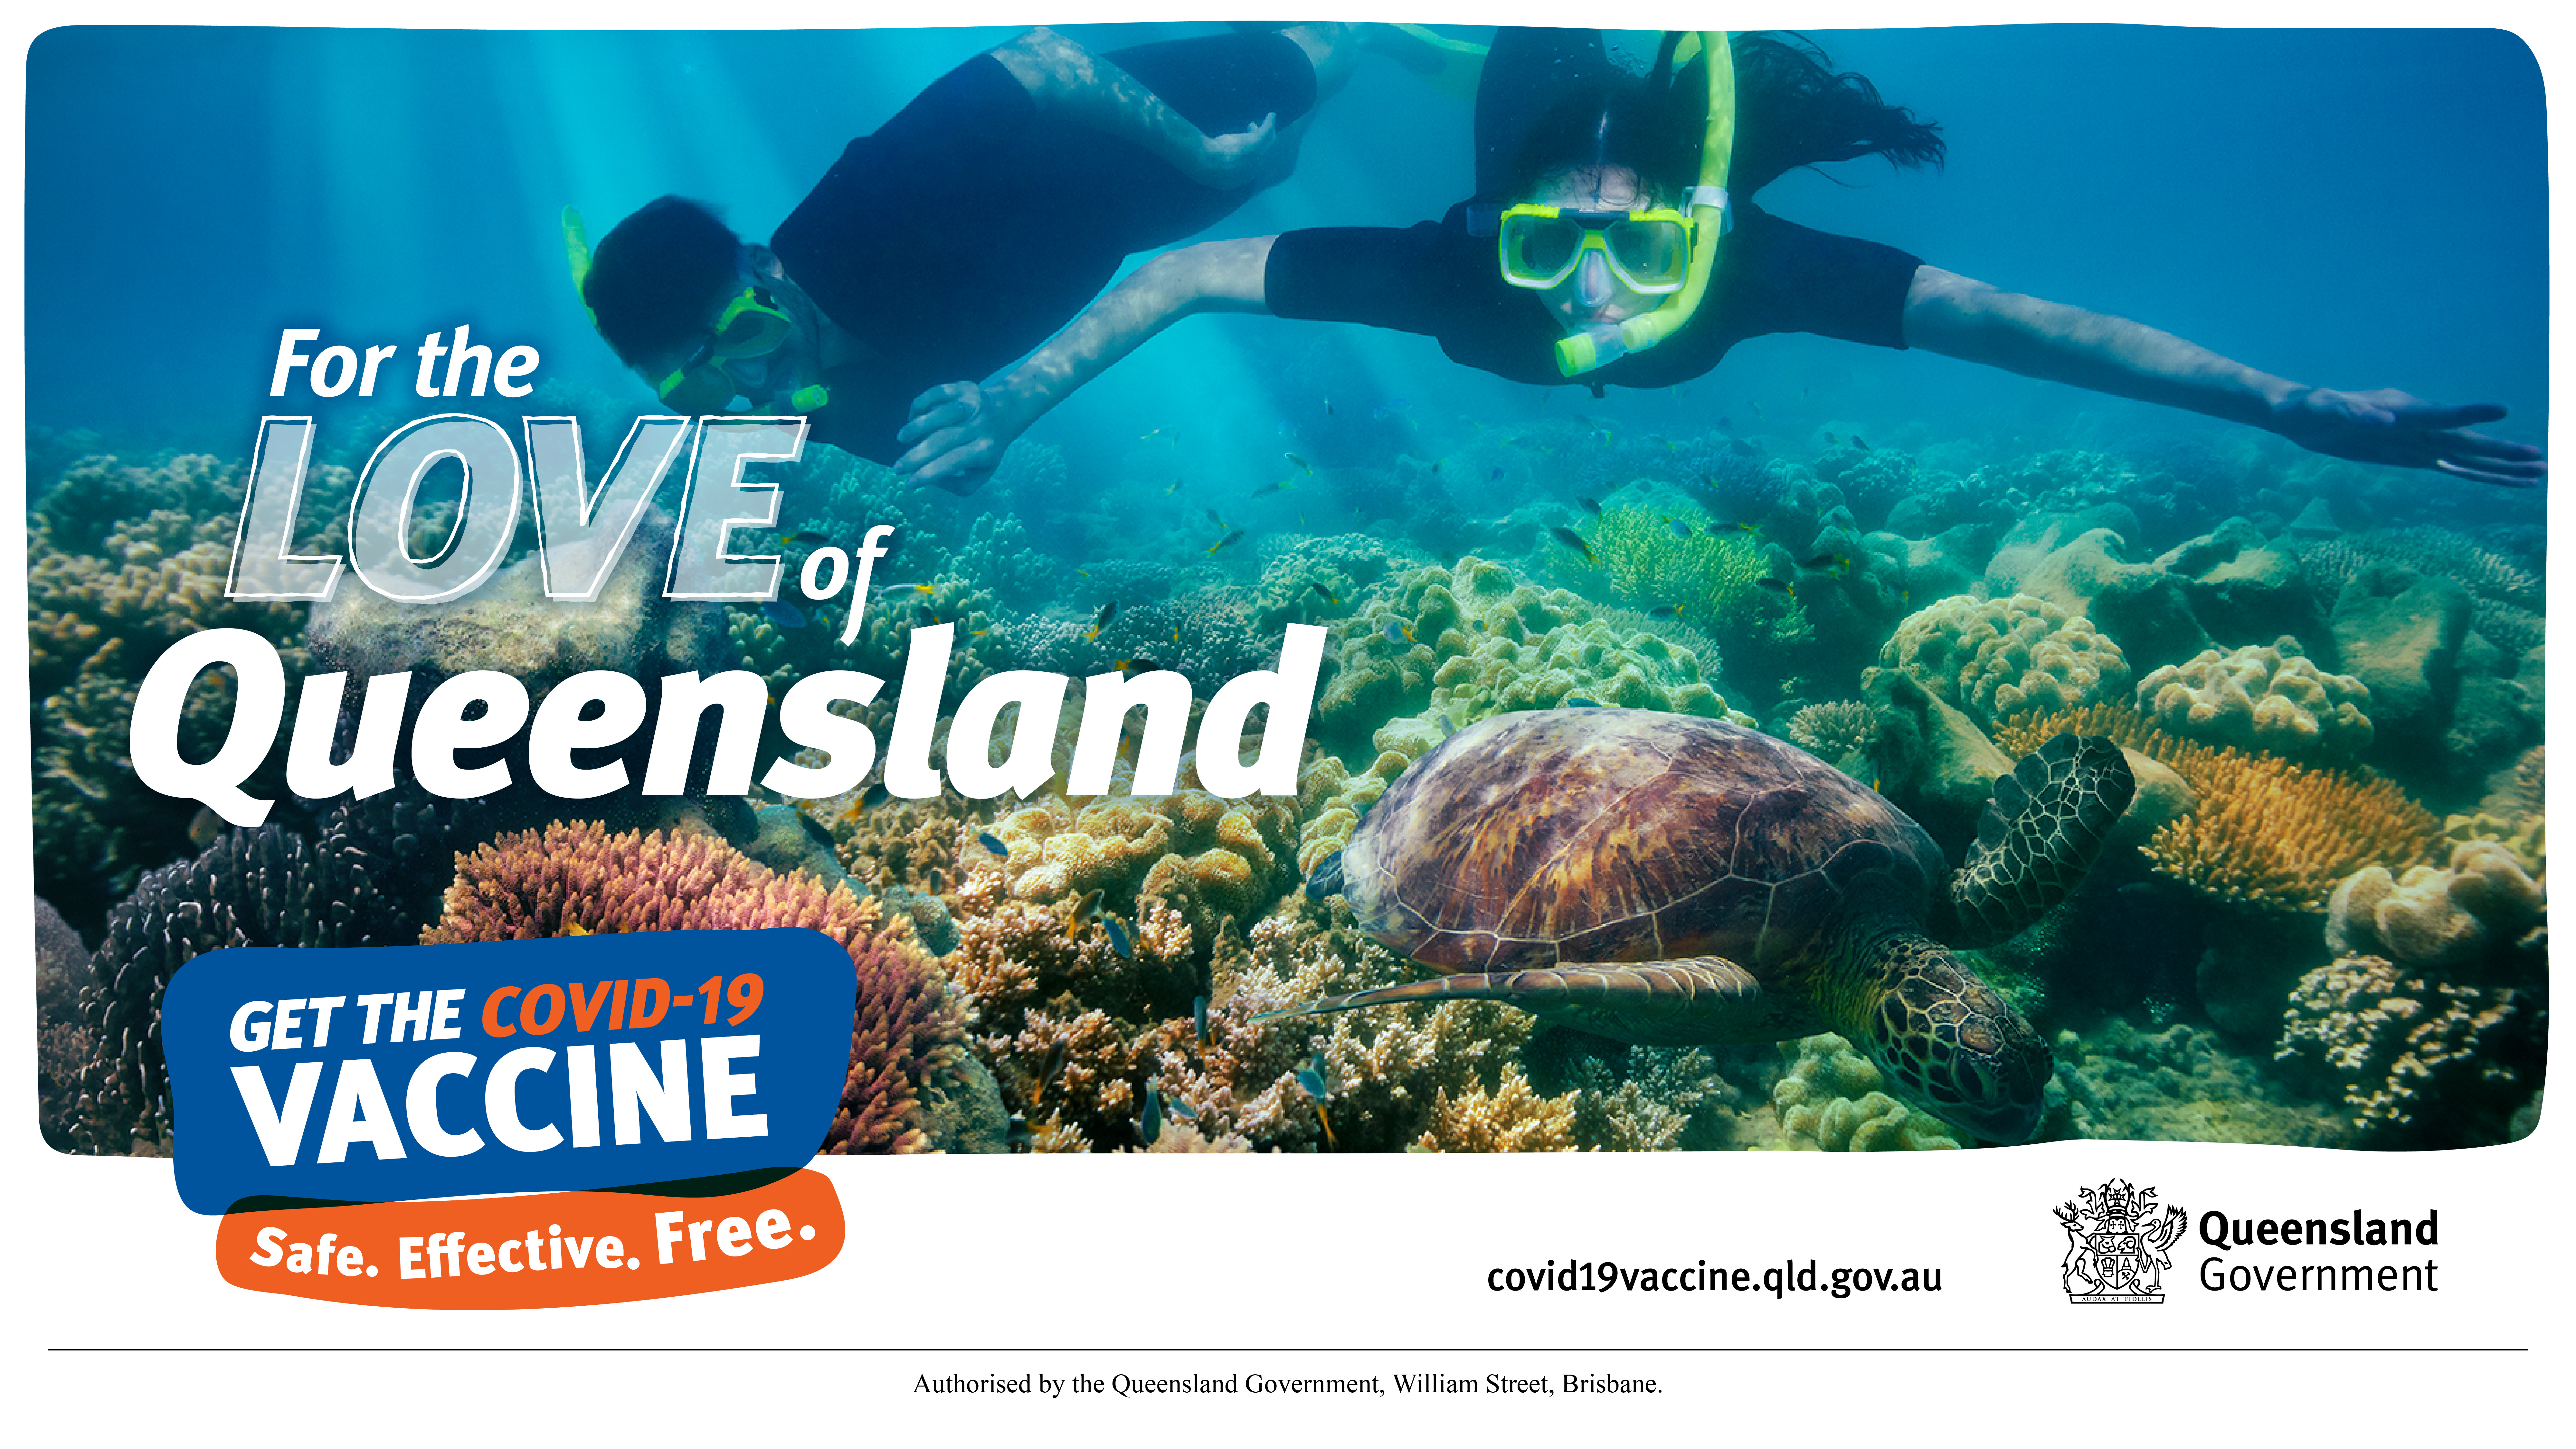 For the love of Queensland COVID vaccine campaign image